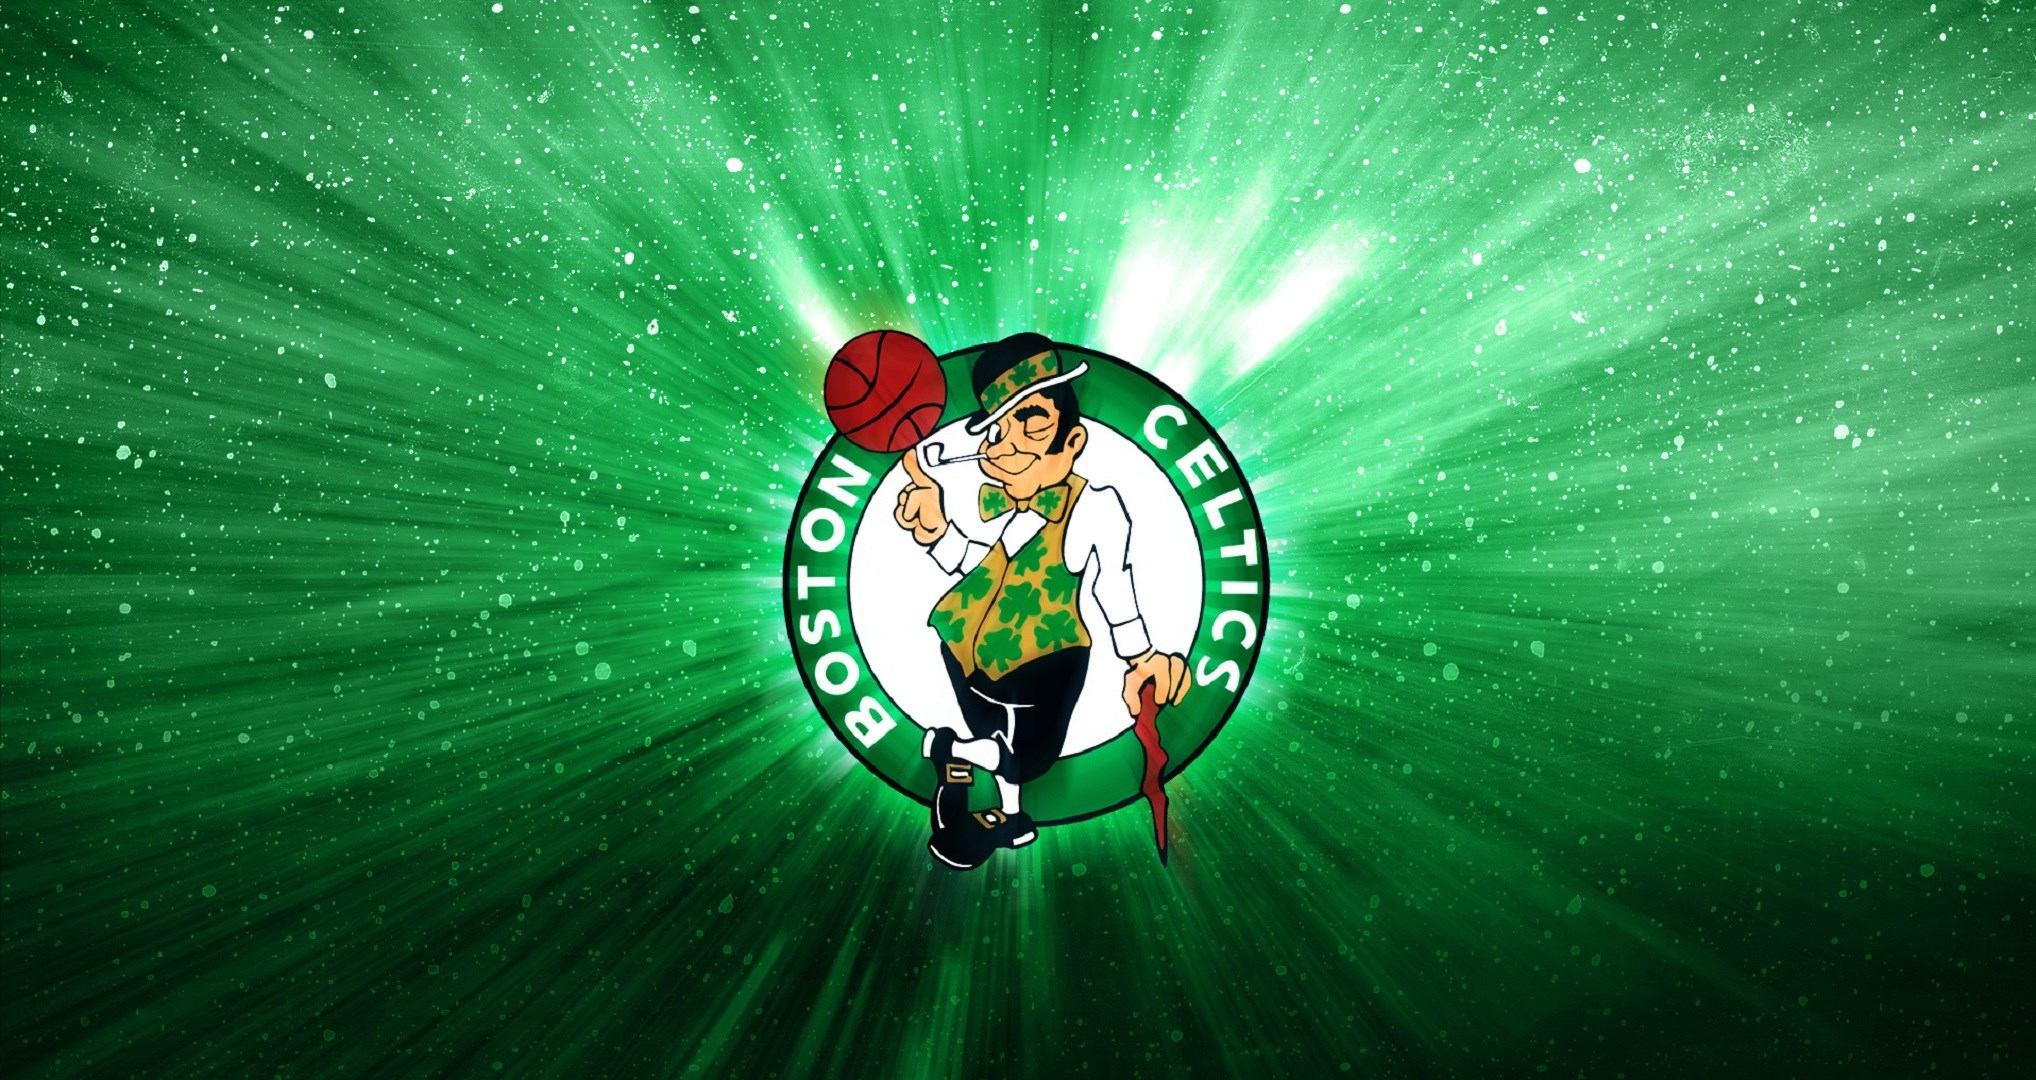 boston-celtics-background-free-kB-Wilder-Stevenson-wallpaper-wpc9203187